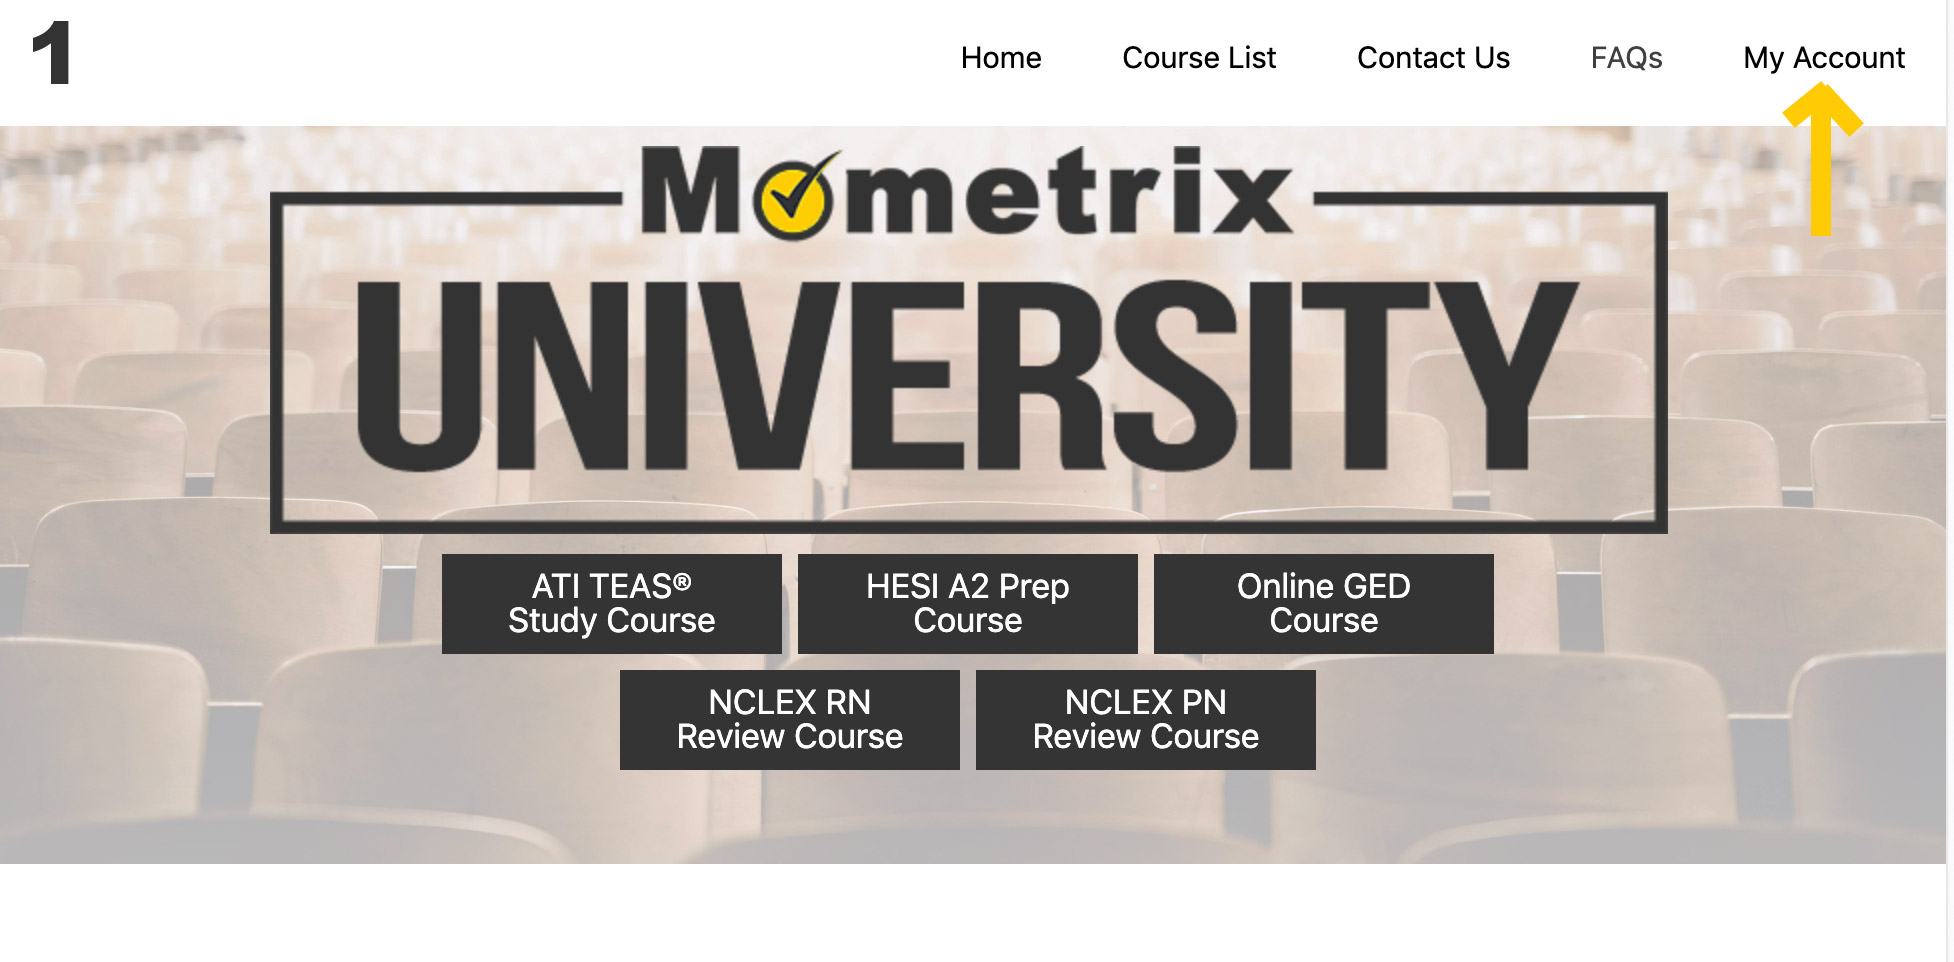 mometrix university my account.